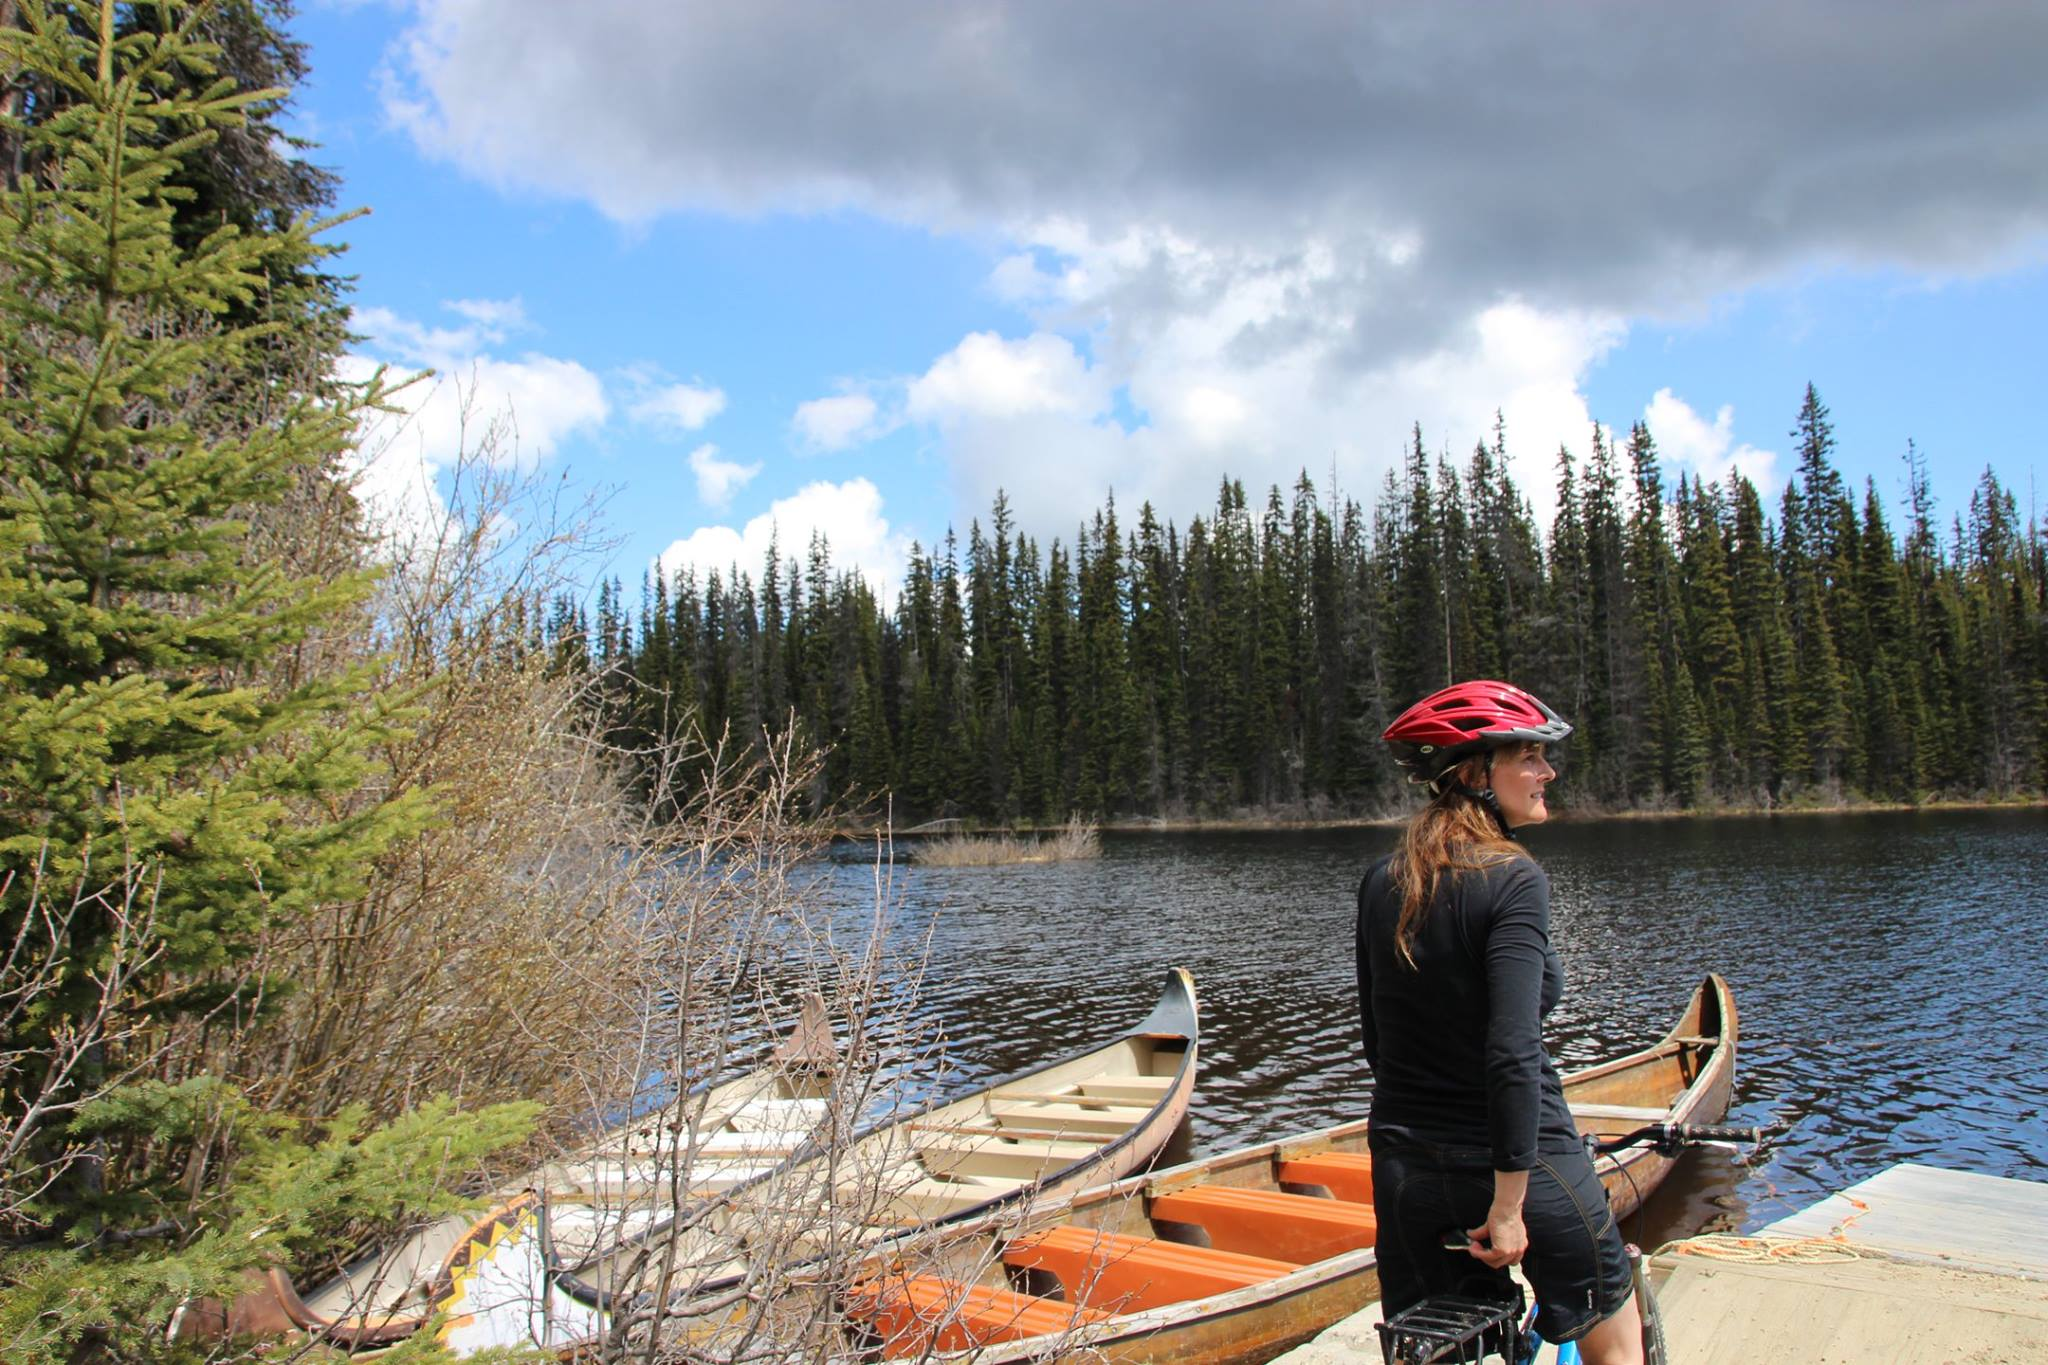 McGillivray Lake - Voyageur canoes and mountain bike ride on this lake near Sun Peaks